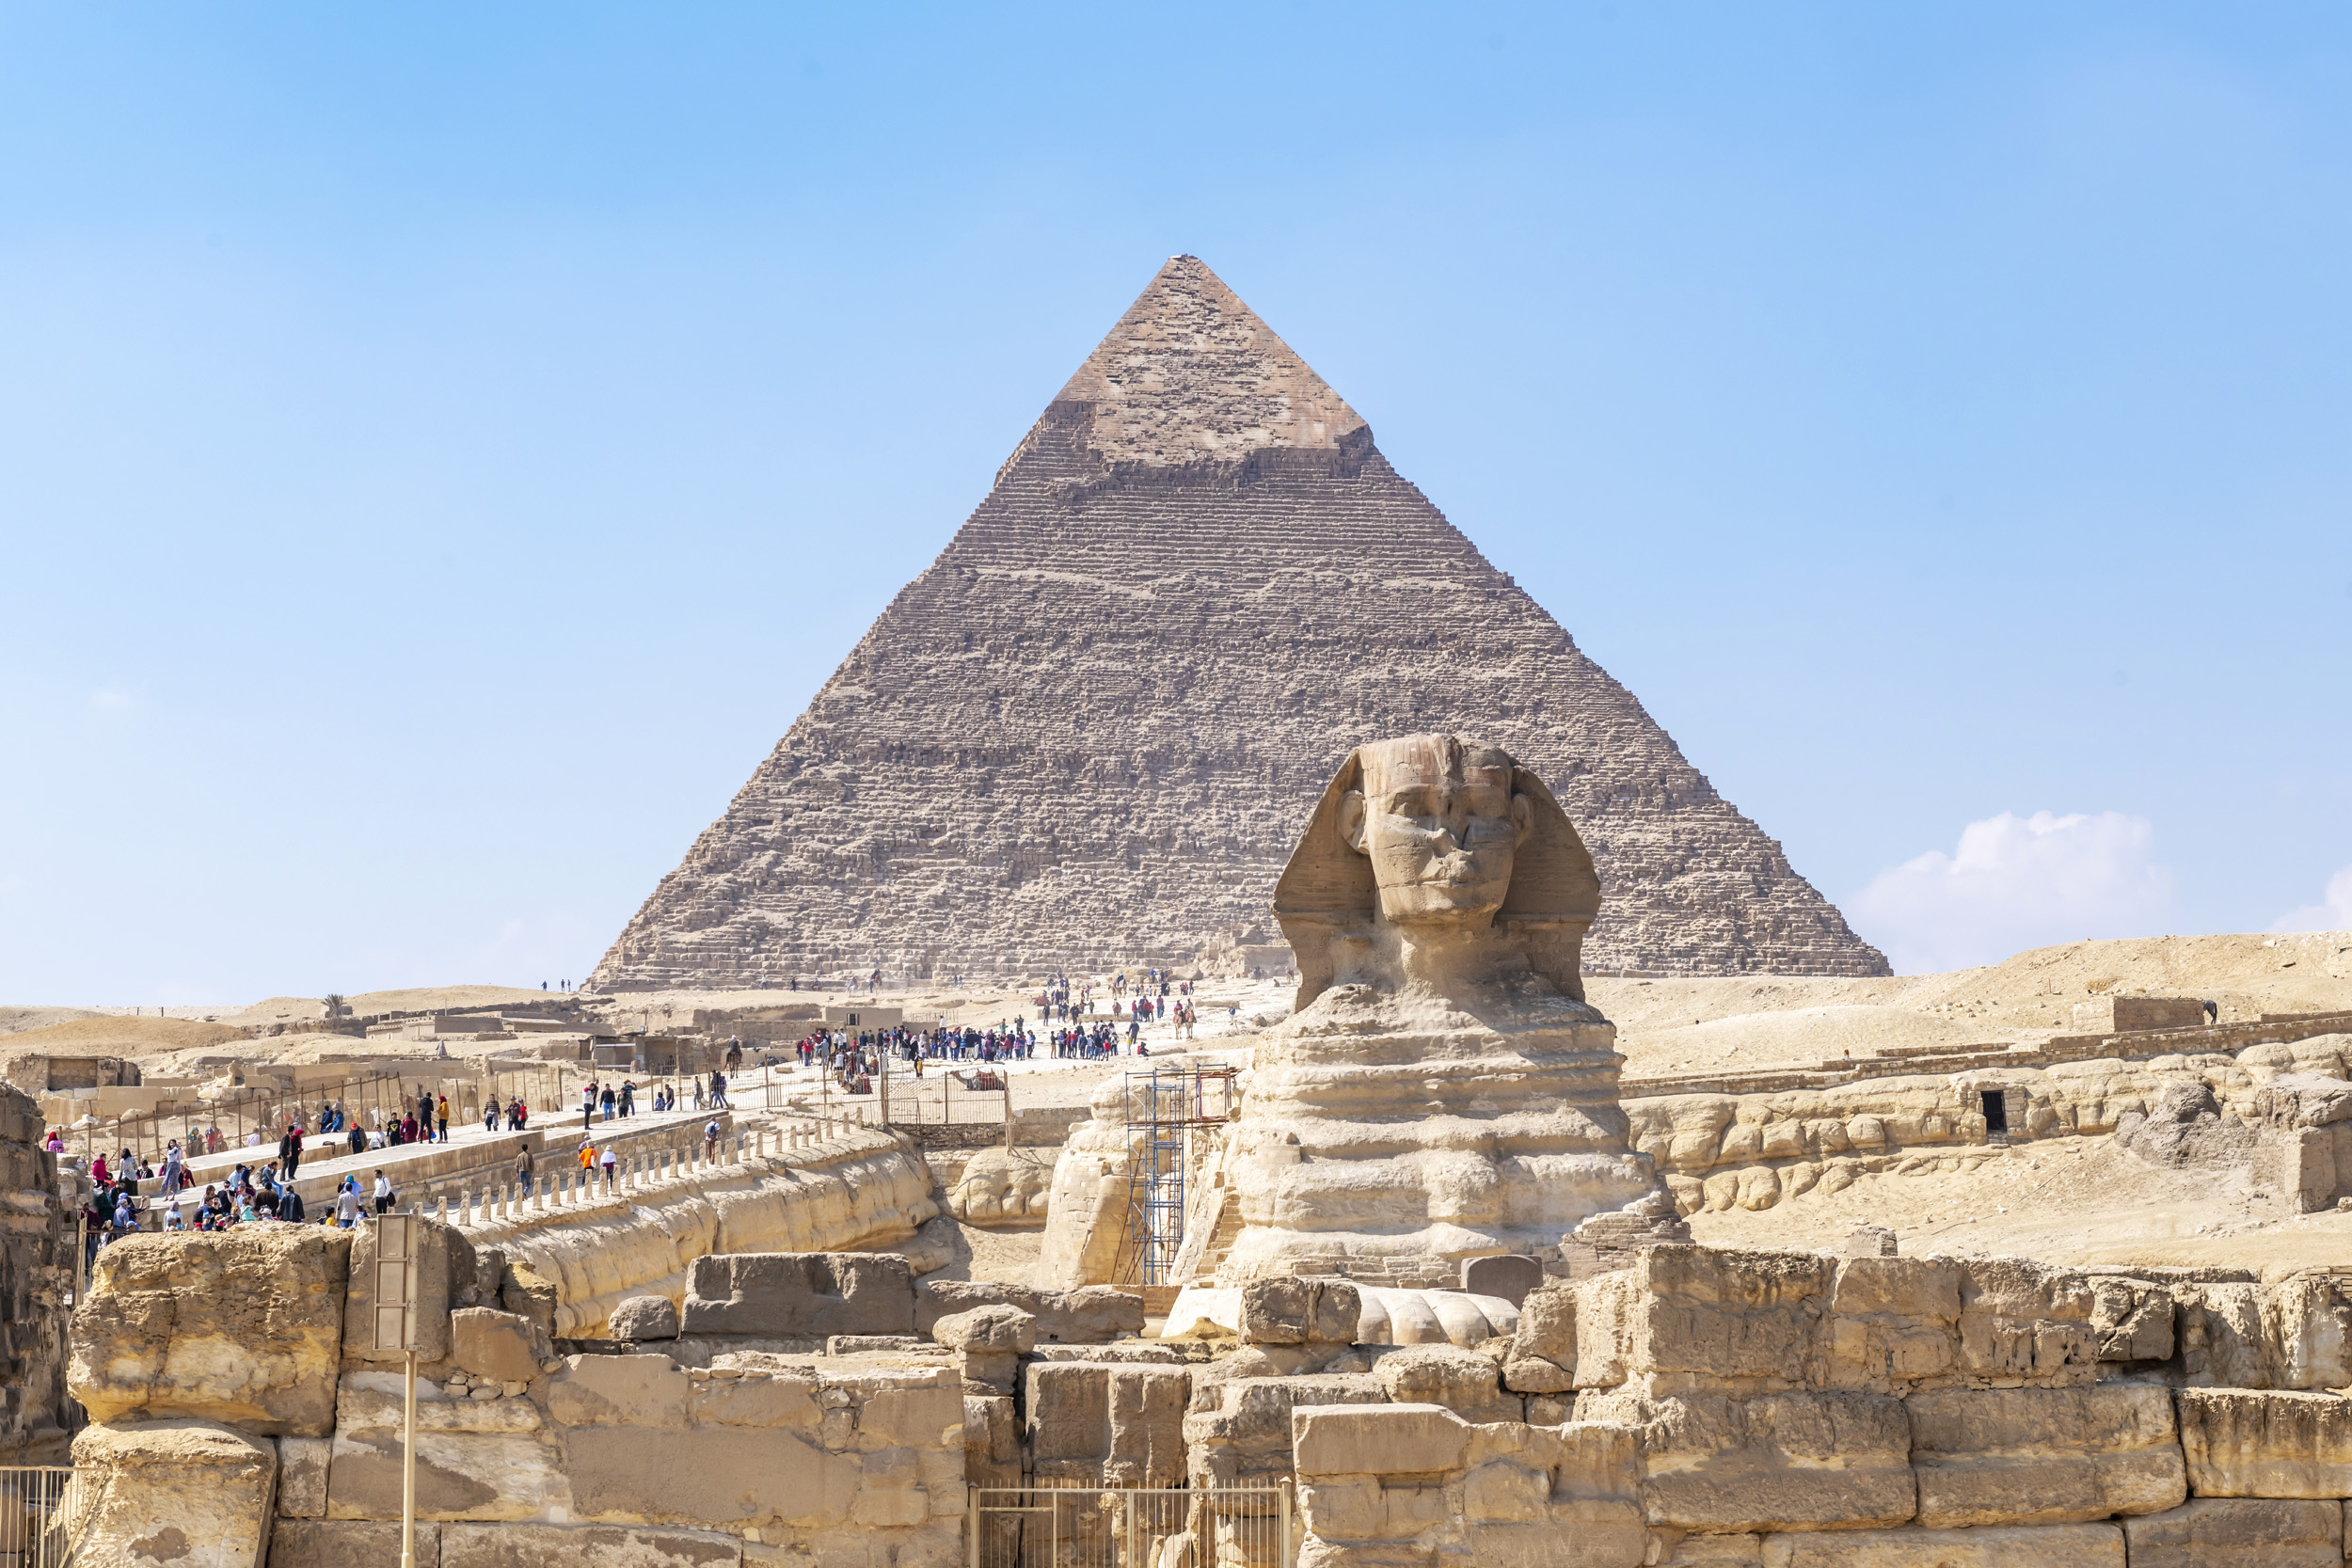 Sphinx and Great Pyramid - Giza, Egypt